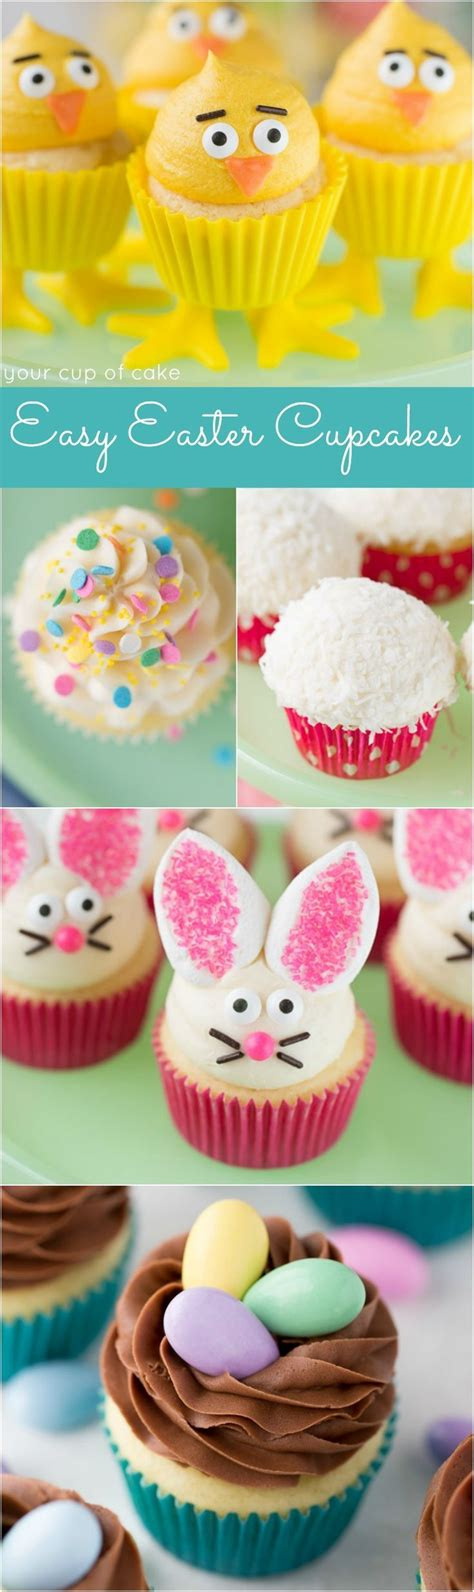 Decorating Ideas For Easter Cupcakes by Easy Easter Cupcake Decorating Ideas The Marshmallow